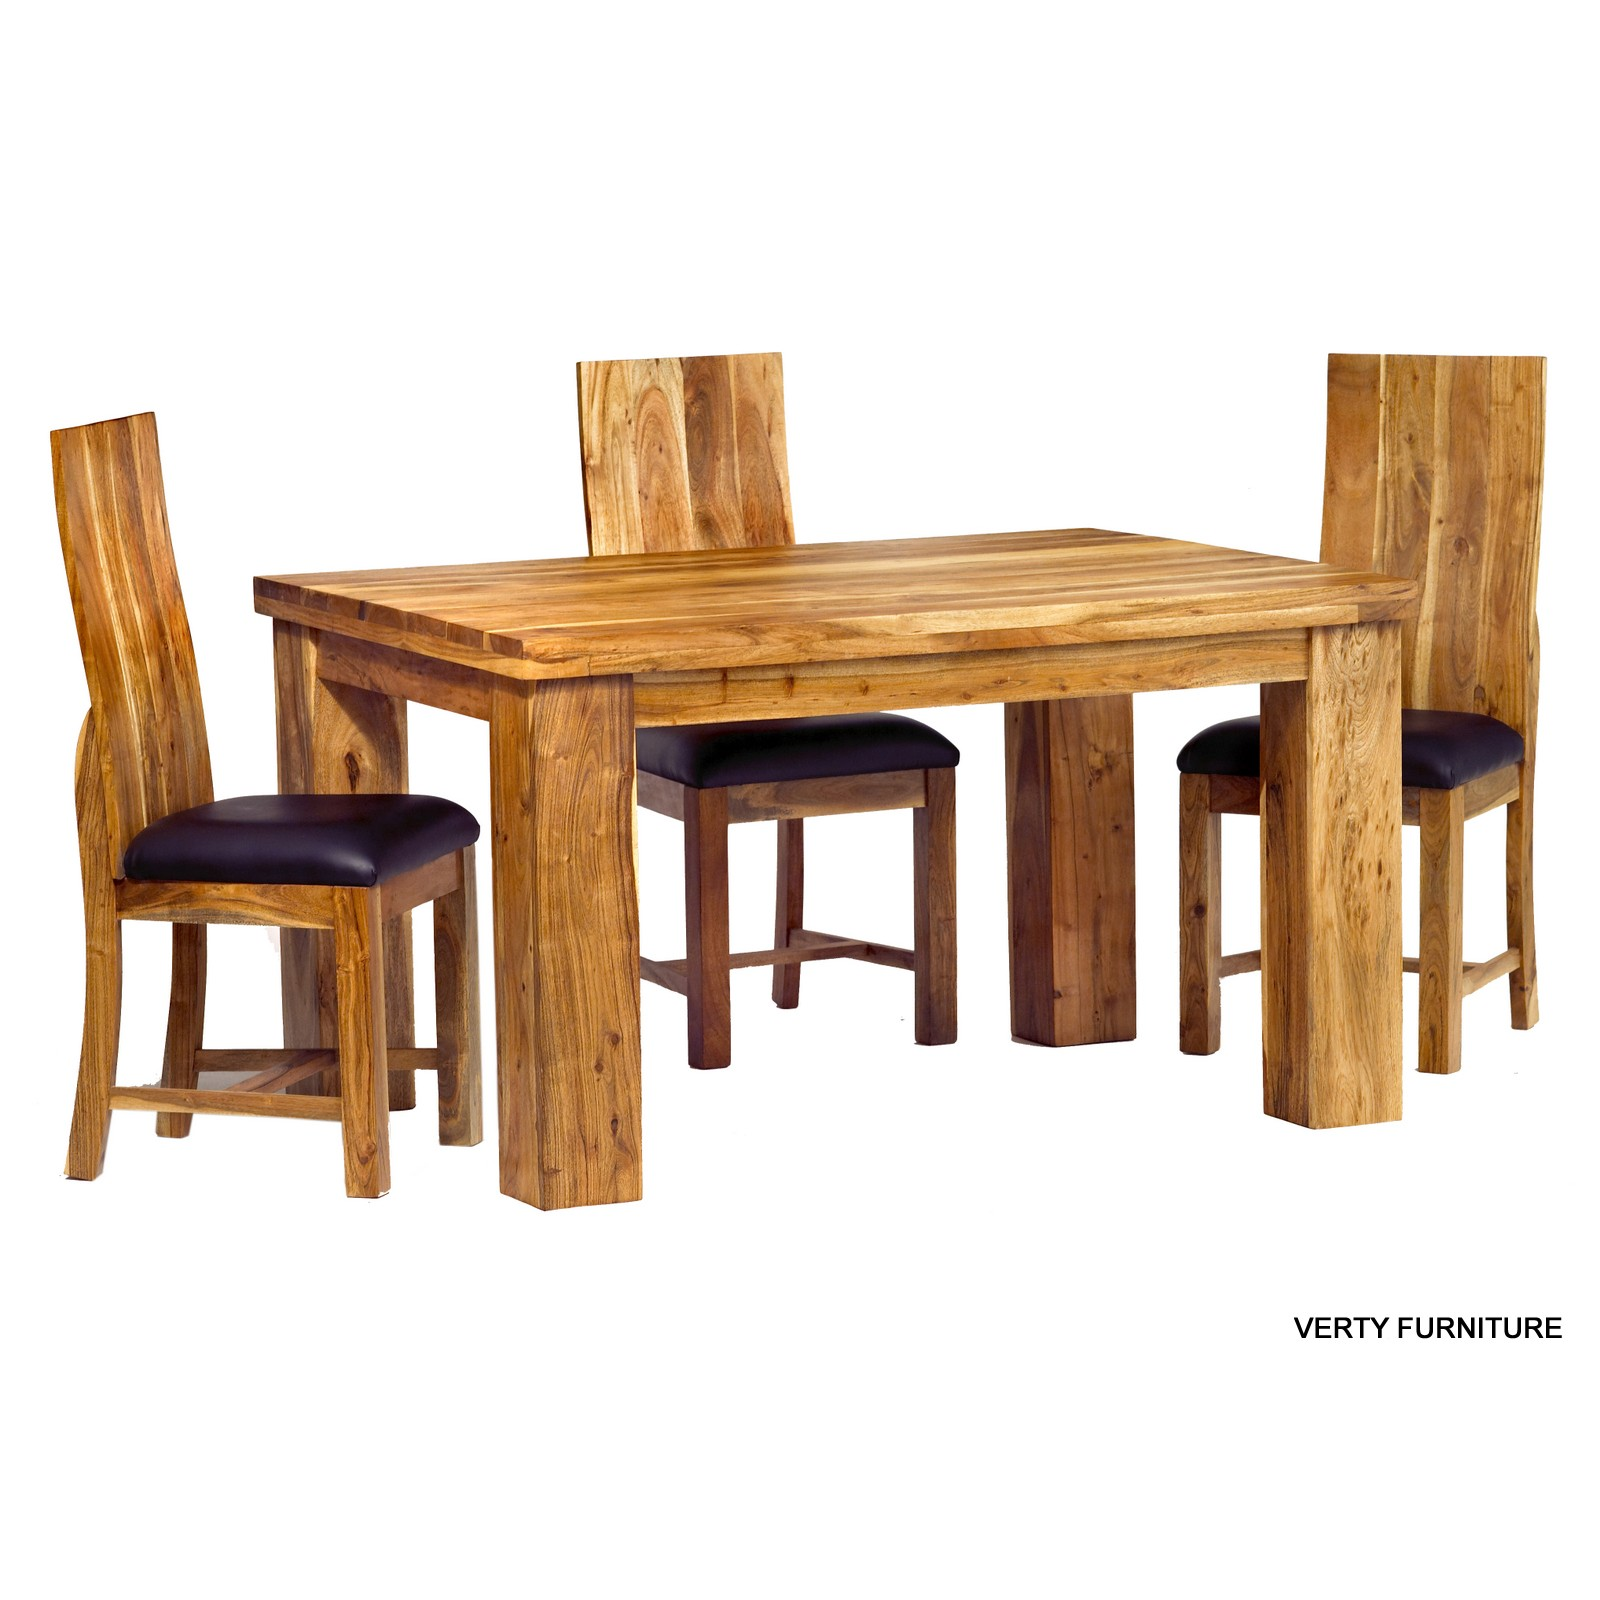 Awesome small dining table set for 4 india light of for Small dining table set